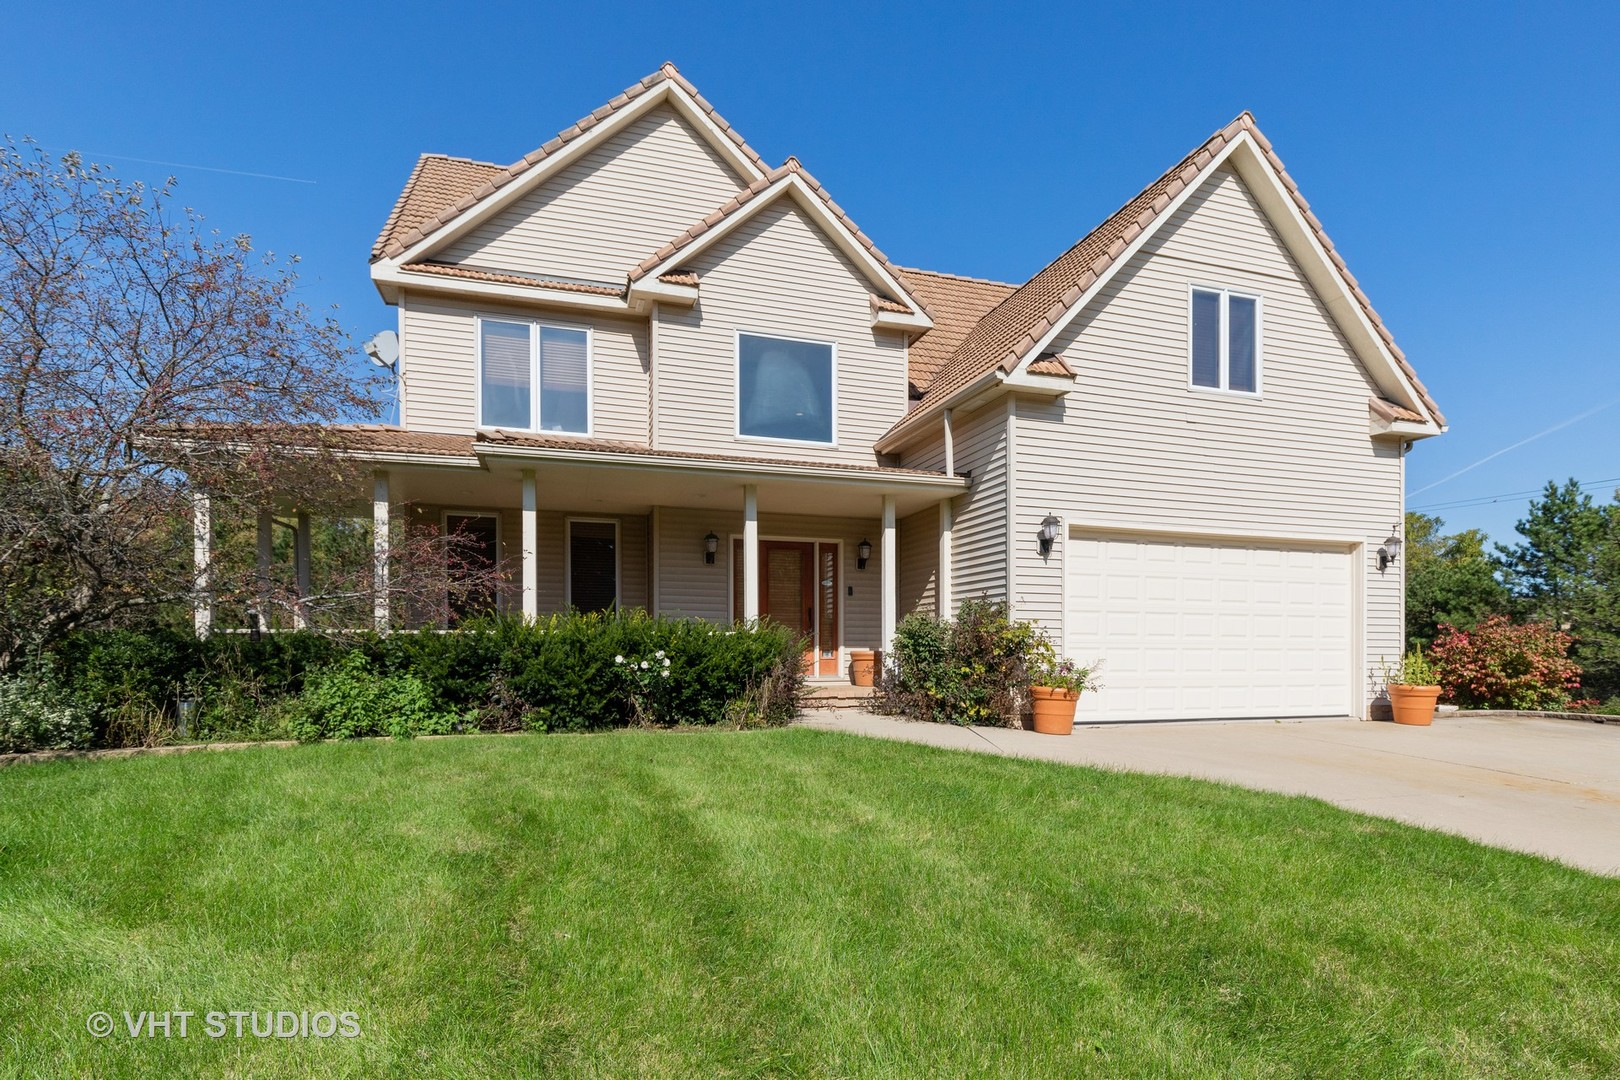 Il Homes For Sale Real Estate Bowers Realty Group